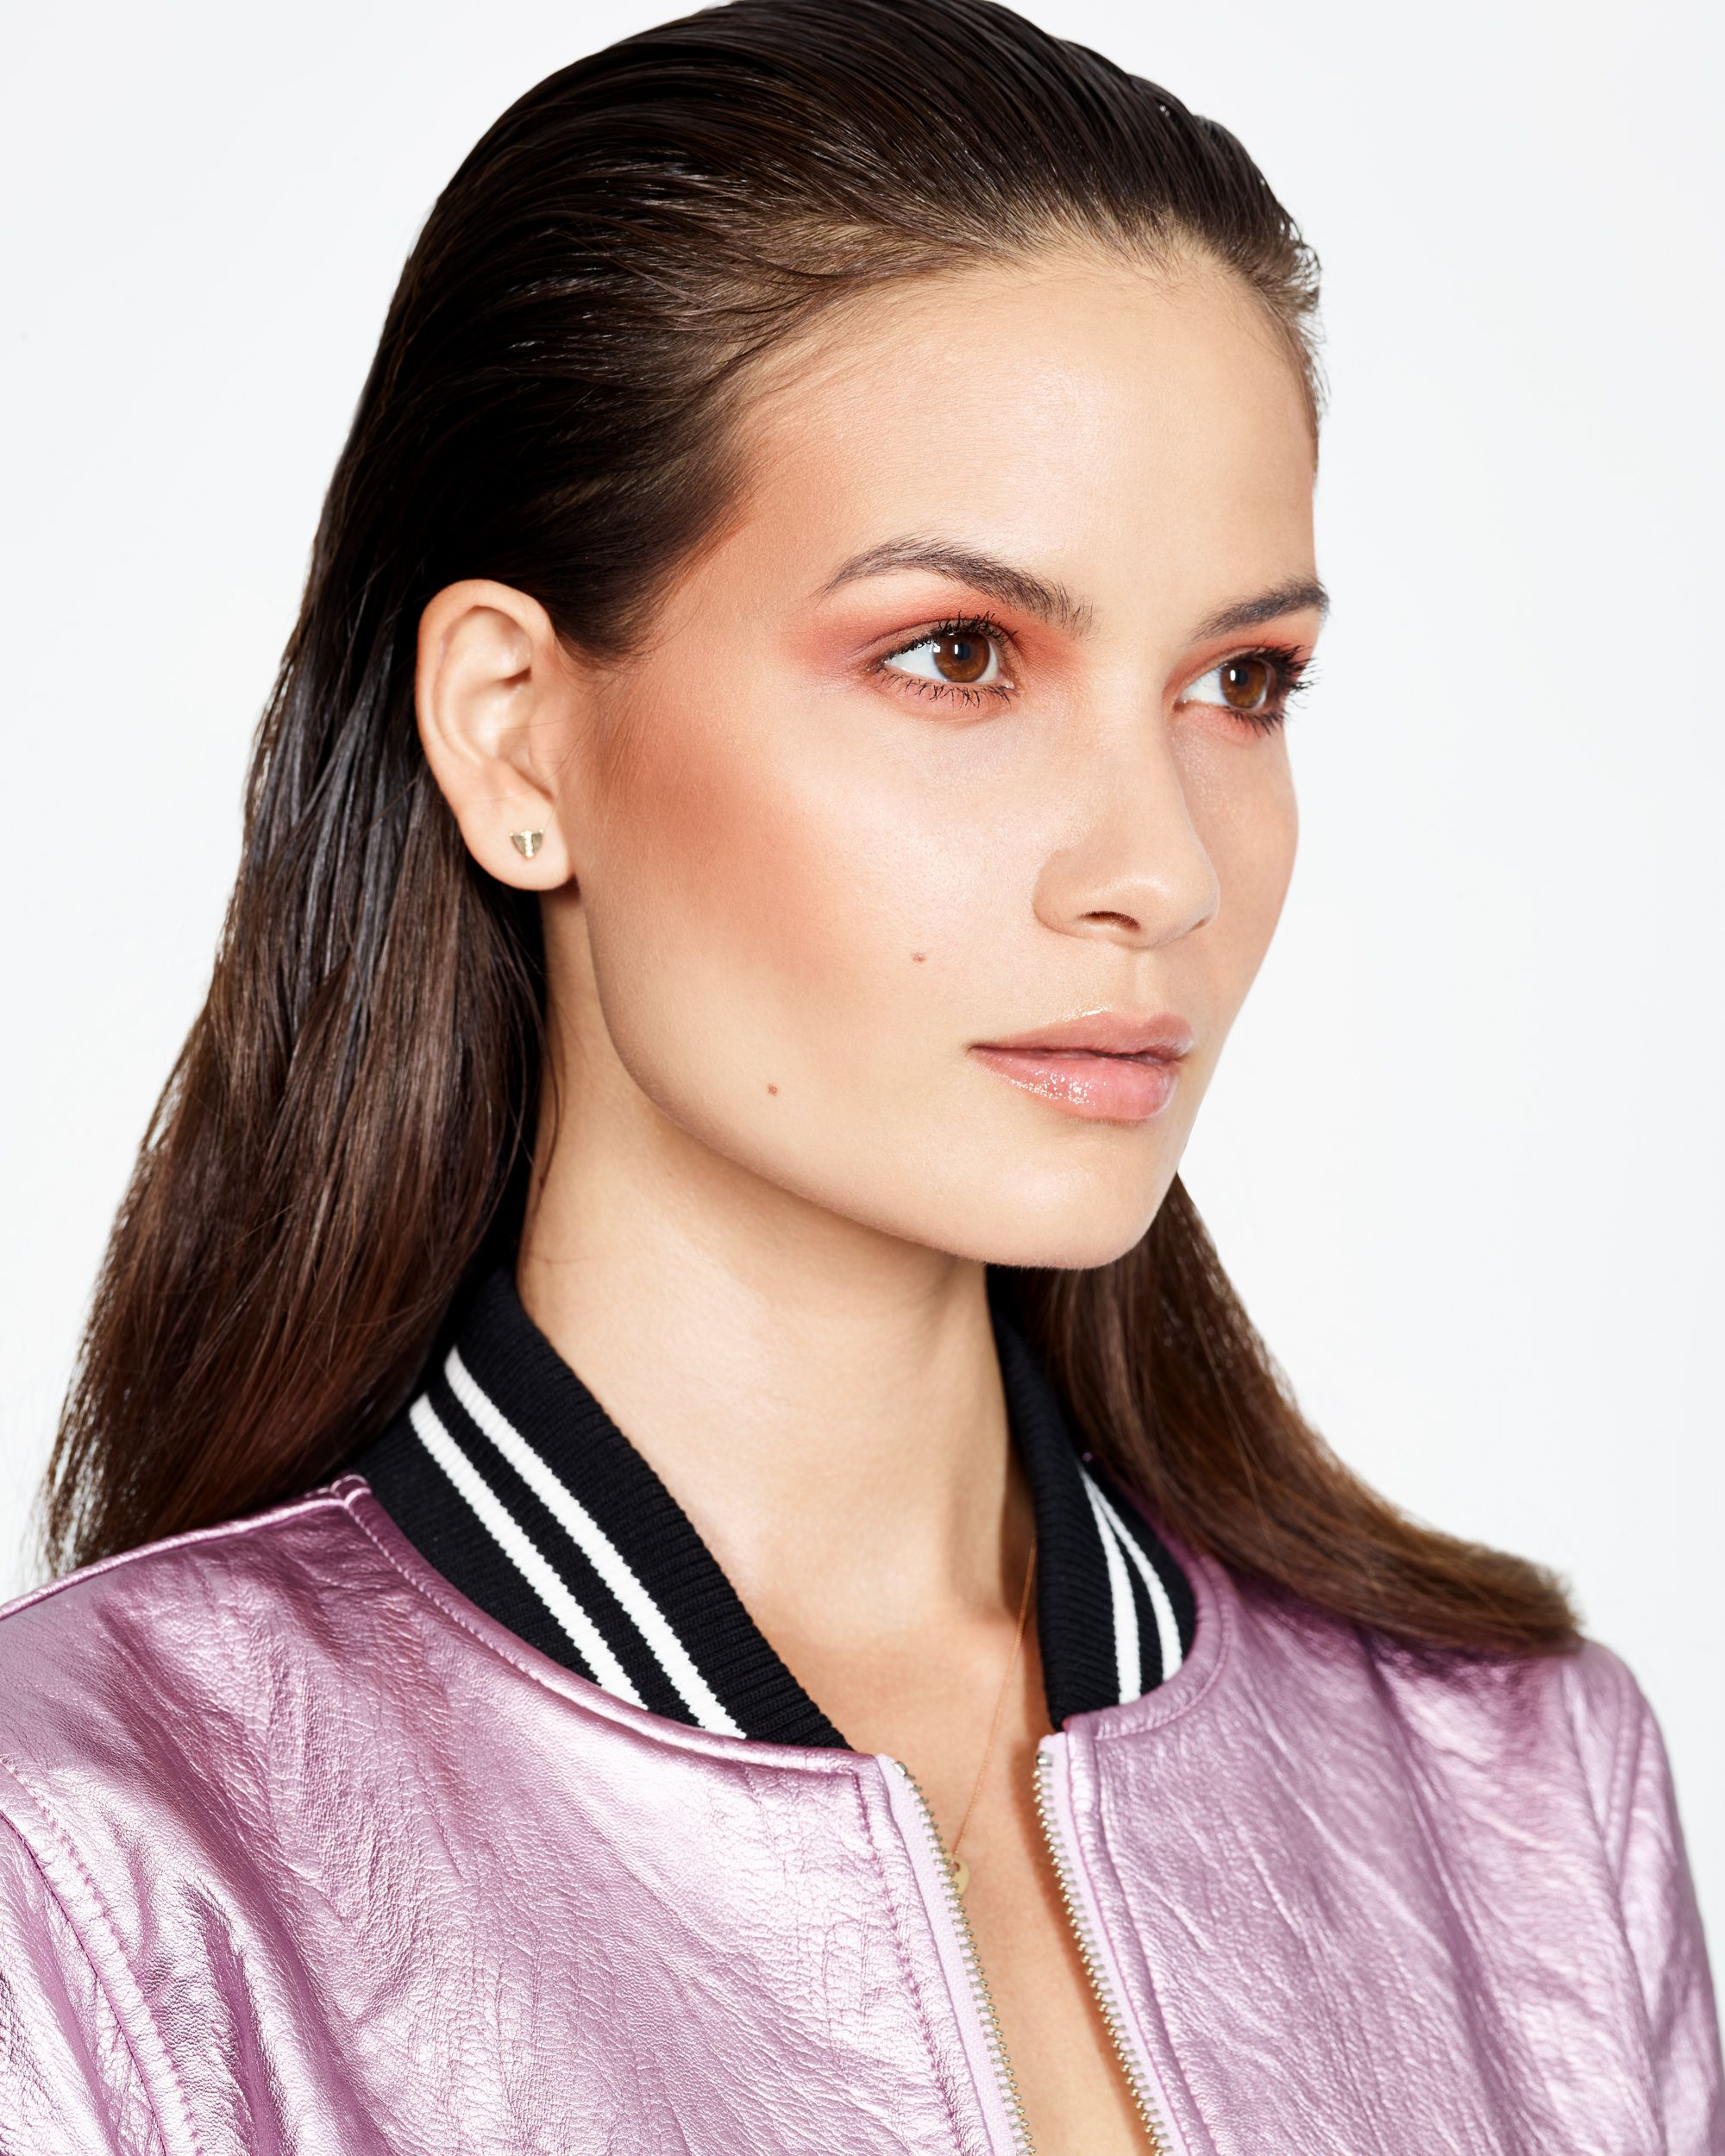 "<p>Lledo re-created this high-impact look by prepping the entire eyelid with a primer (like <a href=""http://www.ulta.com/stay-dont-stray-eyeshadow-primer?productId=xlsImpprod1840041"" target=""_blank"" data-tracking-id=""recirc-text-link"">Nars Smudge Proof Eyeshadow Base</a>, $26) then pressing a translucent burnt orange shadow (try <a href=""http://www1.macys.com/shop/product/mac-eye-shadow-0.05-oz?ID=106344"" target=""_blank"" data-tracking-id=""recirc-text-link"">MAC's Red Brick</a>, $16) into the top crease and along the lower lashes.</p><p>To keep the look wearable for day, Lledo suggests starting with just a small amount of shadow. ""Build the color until you get the intensity you want, then blend the edges,"" he advises. Finish with black mascara on the top and bottom lashes to make the whites of the eye pop.</p>"